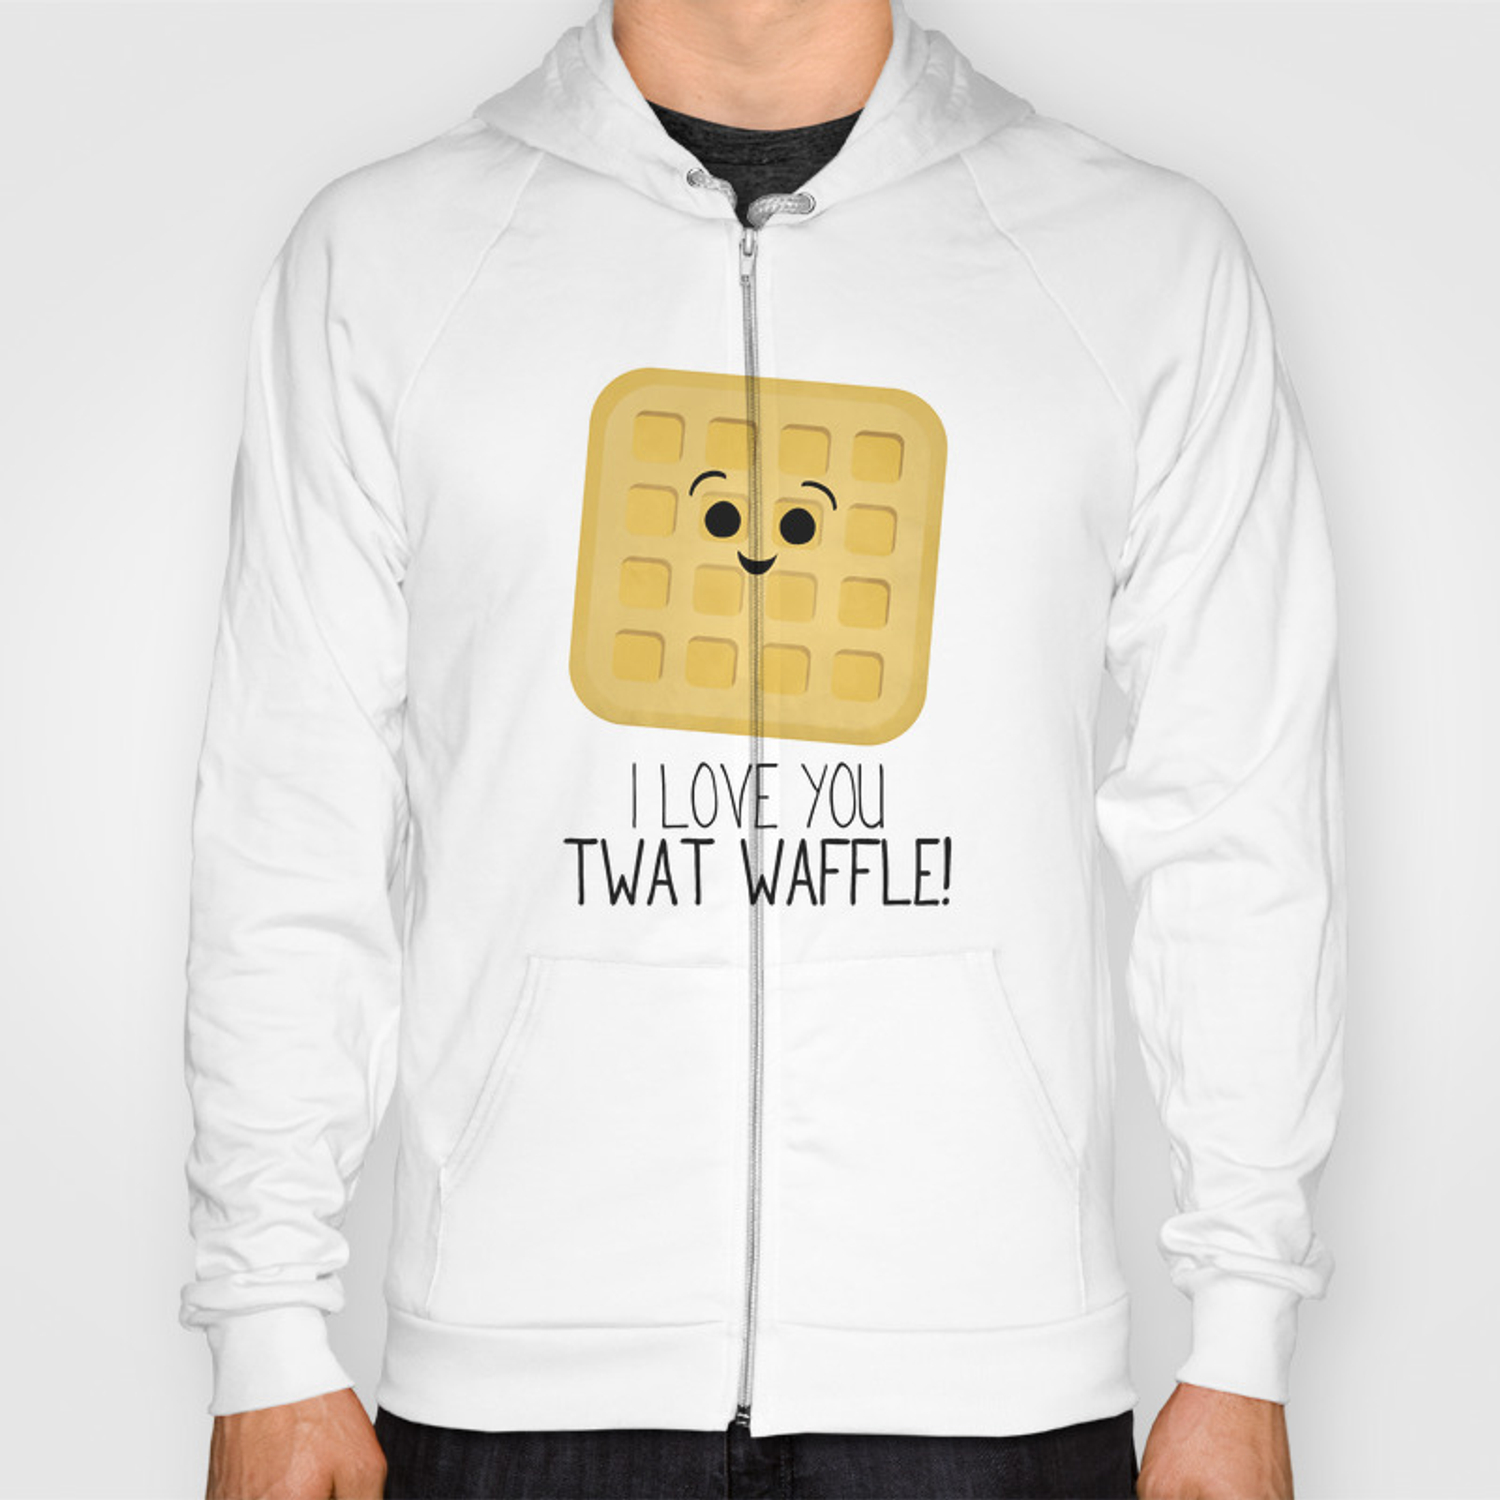 ef34d2290 I Love You Twat Waffle Hoody by avenger | Society6